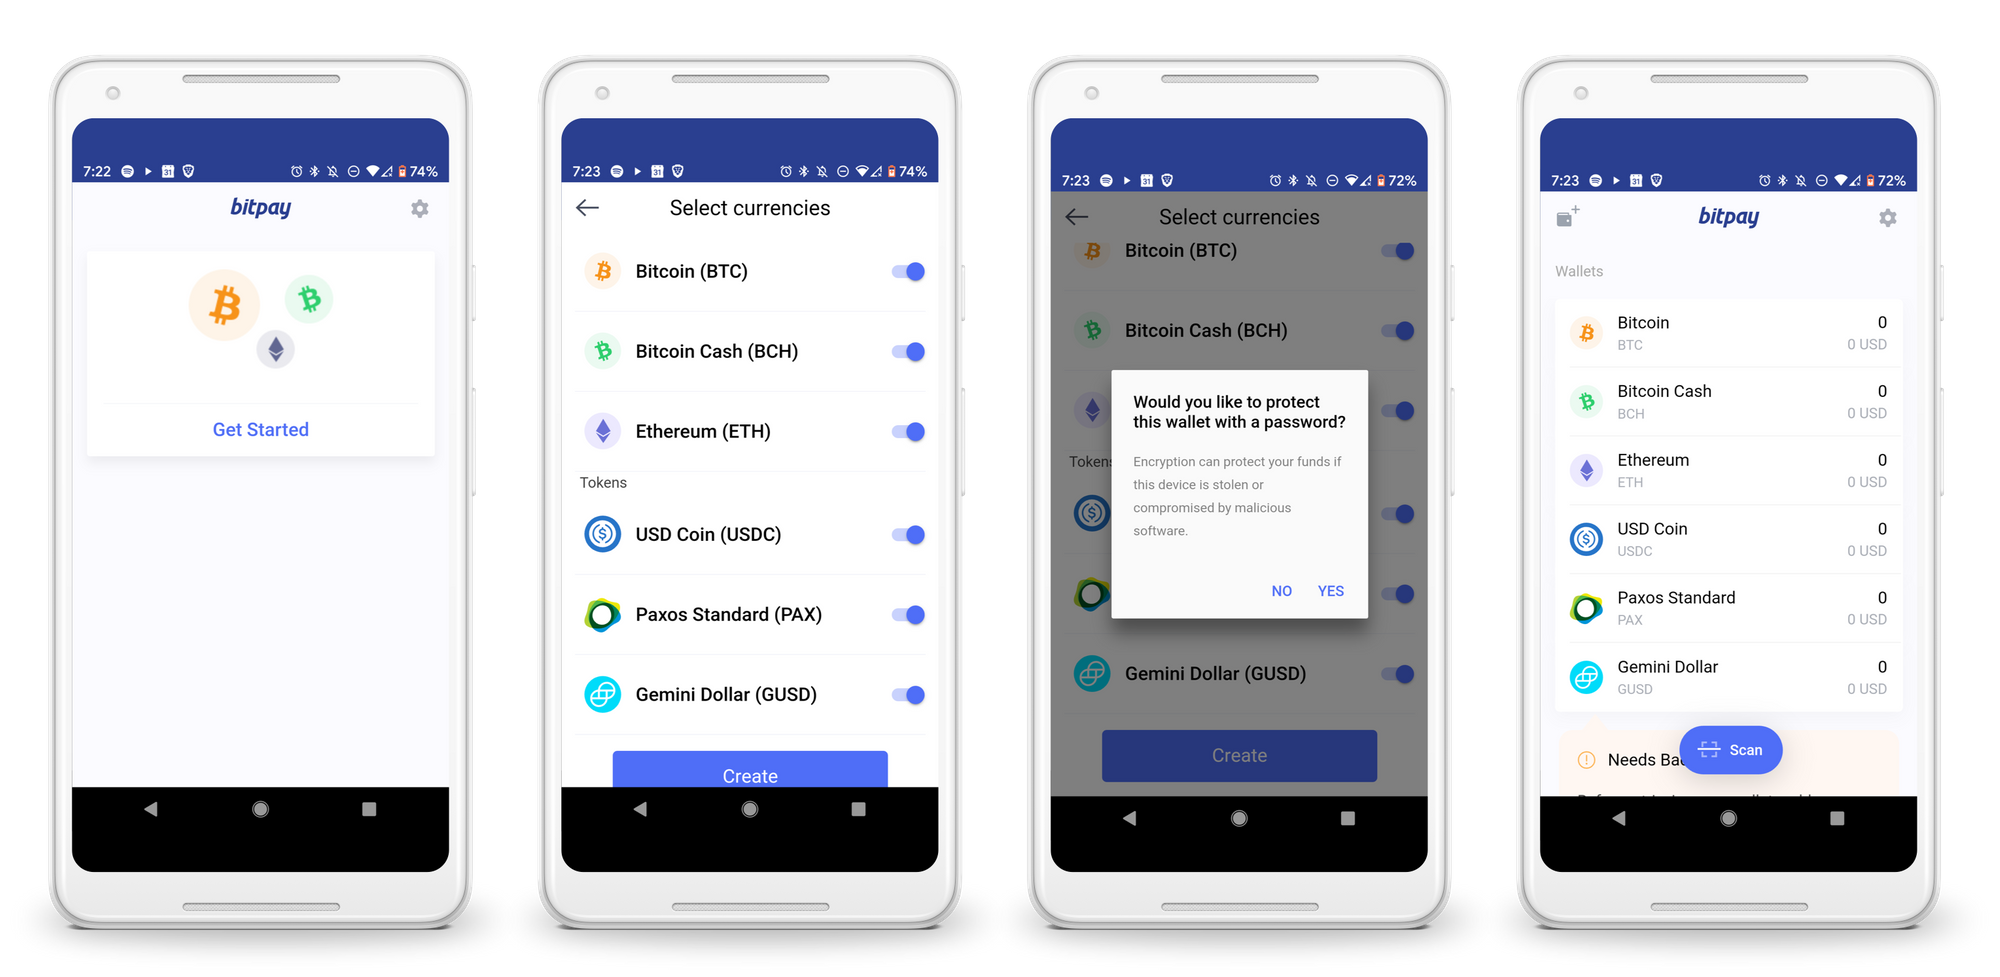 Stablecoins in the BitPay App